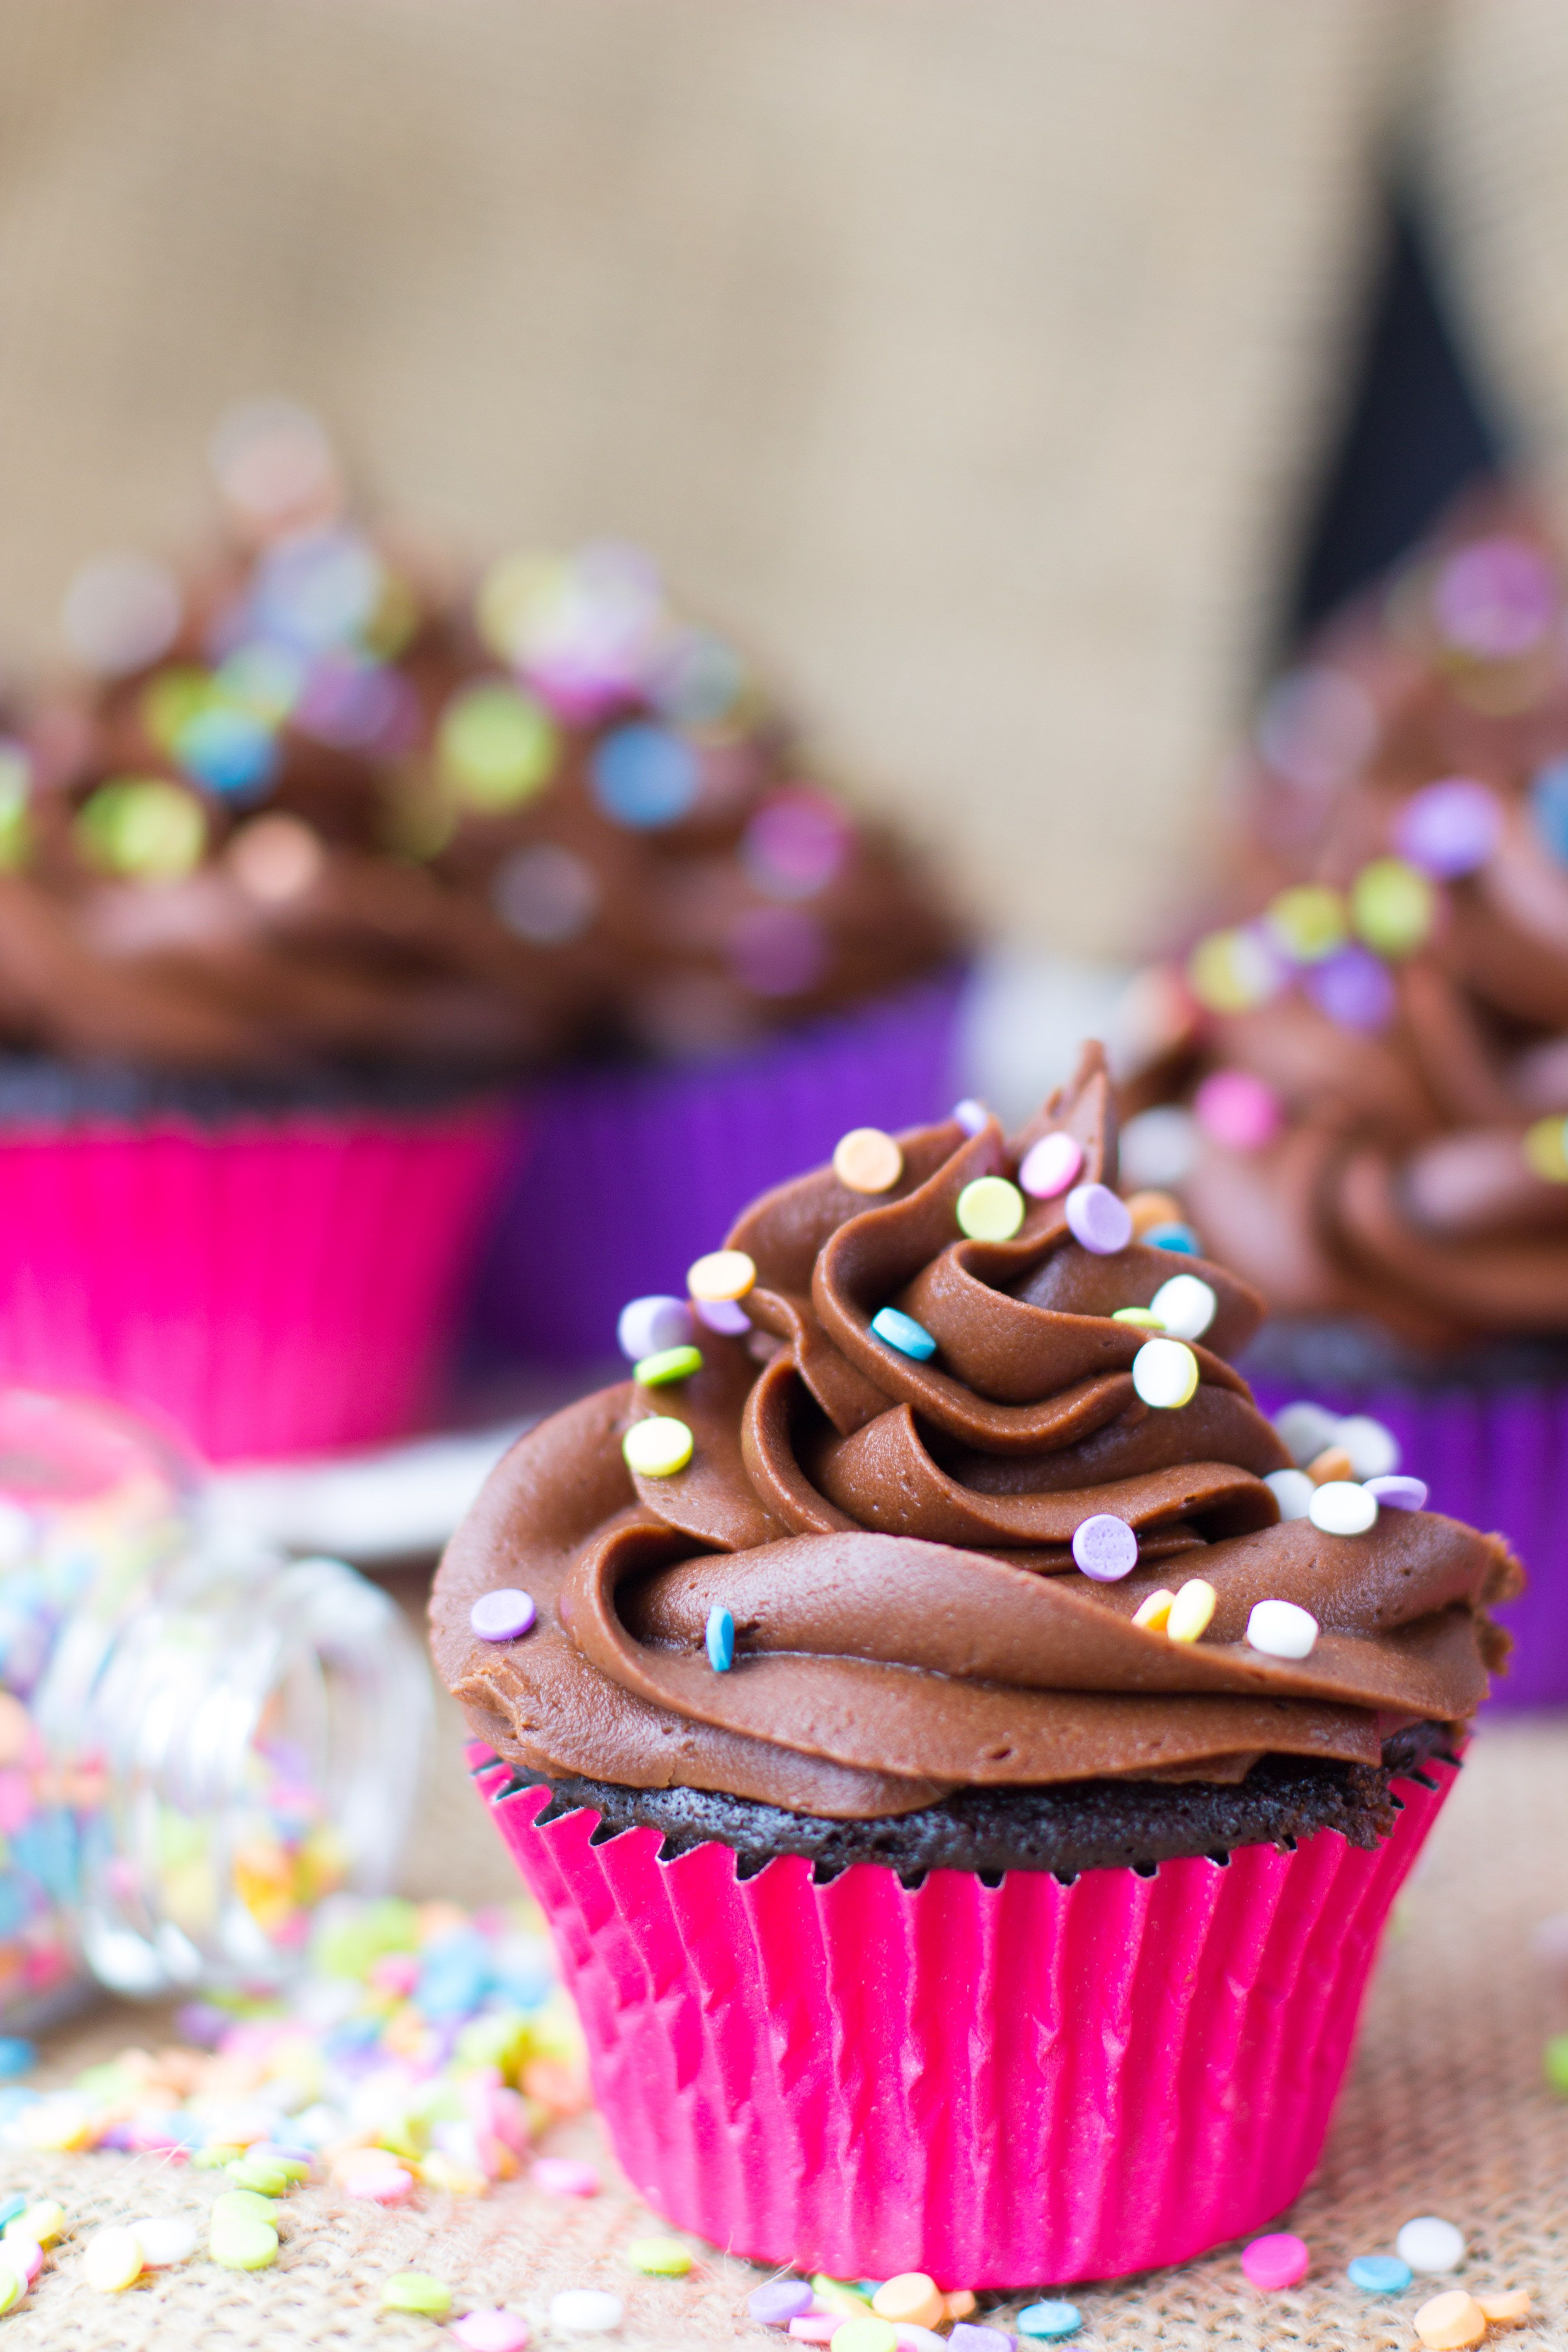 Check Out Easy Chocolate Cupcakes It 39 S So Easy To Make